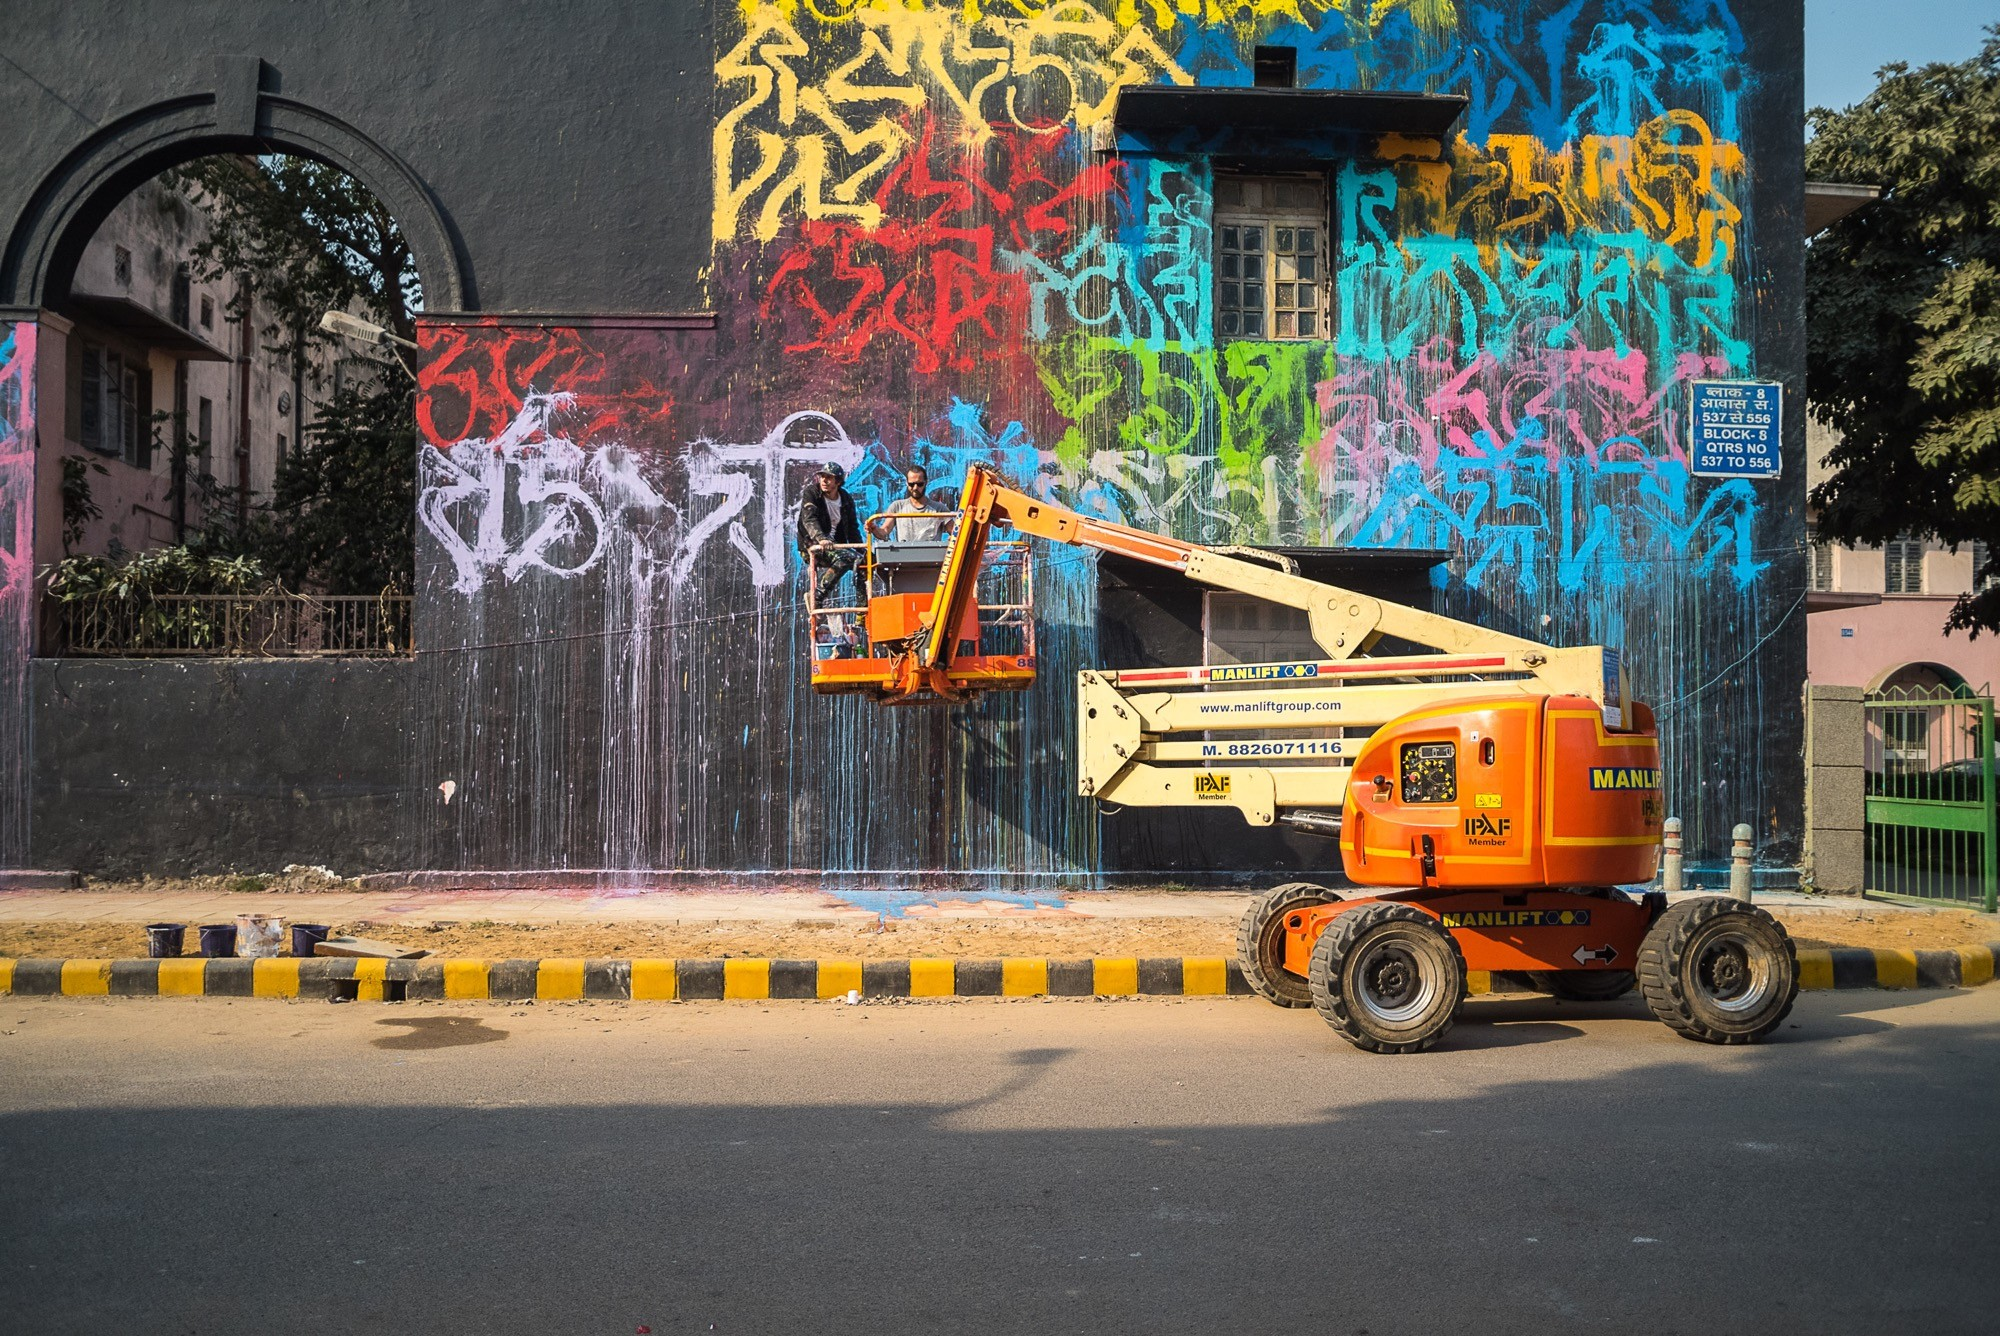 2_lek_sowat_lodhi art district_photo by naman saraiya